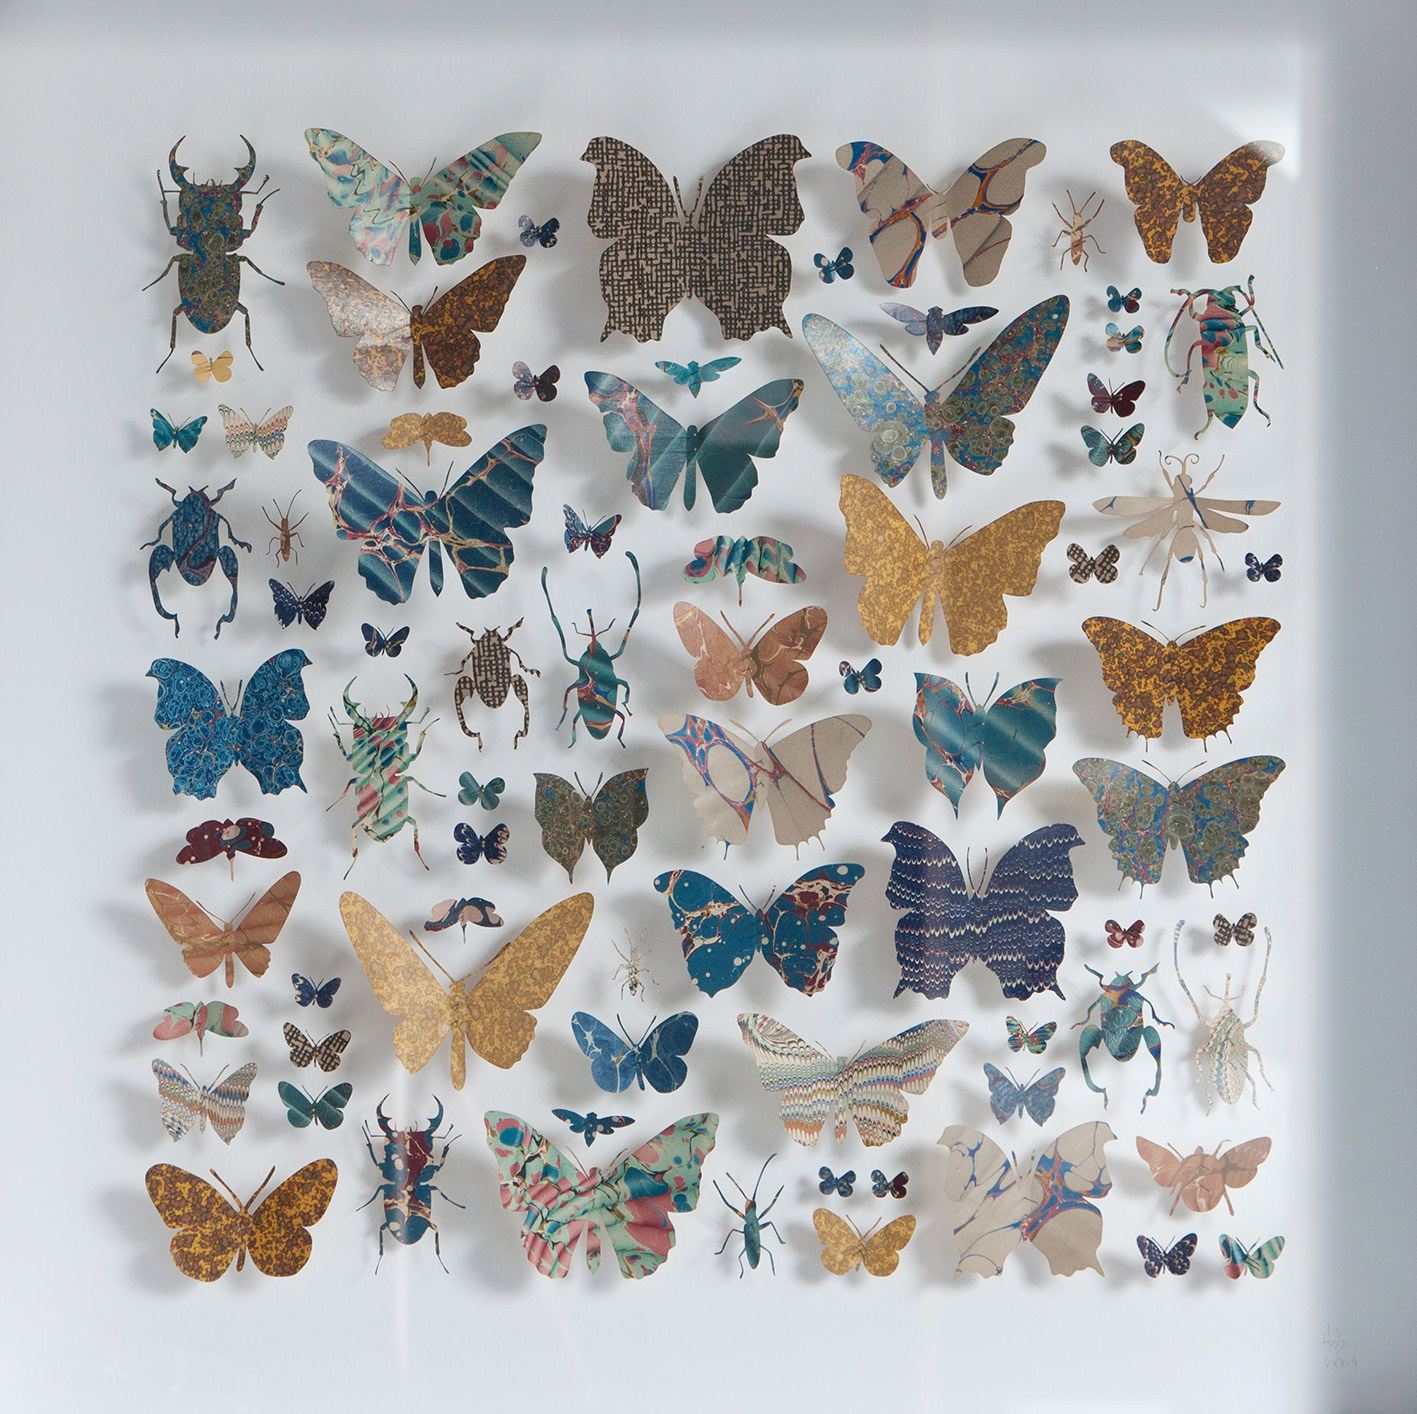 <span class=&#34;link fancybox-details-link&#34;><a href=&#34;/artists/142-helen-ward/works/6231-helen-ward-morpho-square-2-2019/&#34;>View Detail Page</a></span><div class=&#34;artist&#34;><strong>Helen Ward</strong></div> <div class=&#34;title&#34;><em>Morpho Square 2</em>, 2019</div> <div class=&#34;medium&#34;>paper, Victorian hand-marbled papers, gold leaf, enamel pins</div> <div class=&#34;dimensions&#34;>60 x 60 cm</div><div class=&#34;price&#34;>£1,280.00</div><div class=&#34;copyright_line&#34;>Own Art: £ 128 x 10 Monthly 0% APR Representative Payments</div>